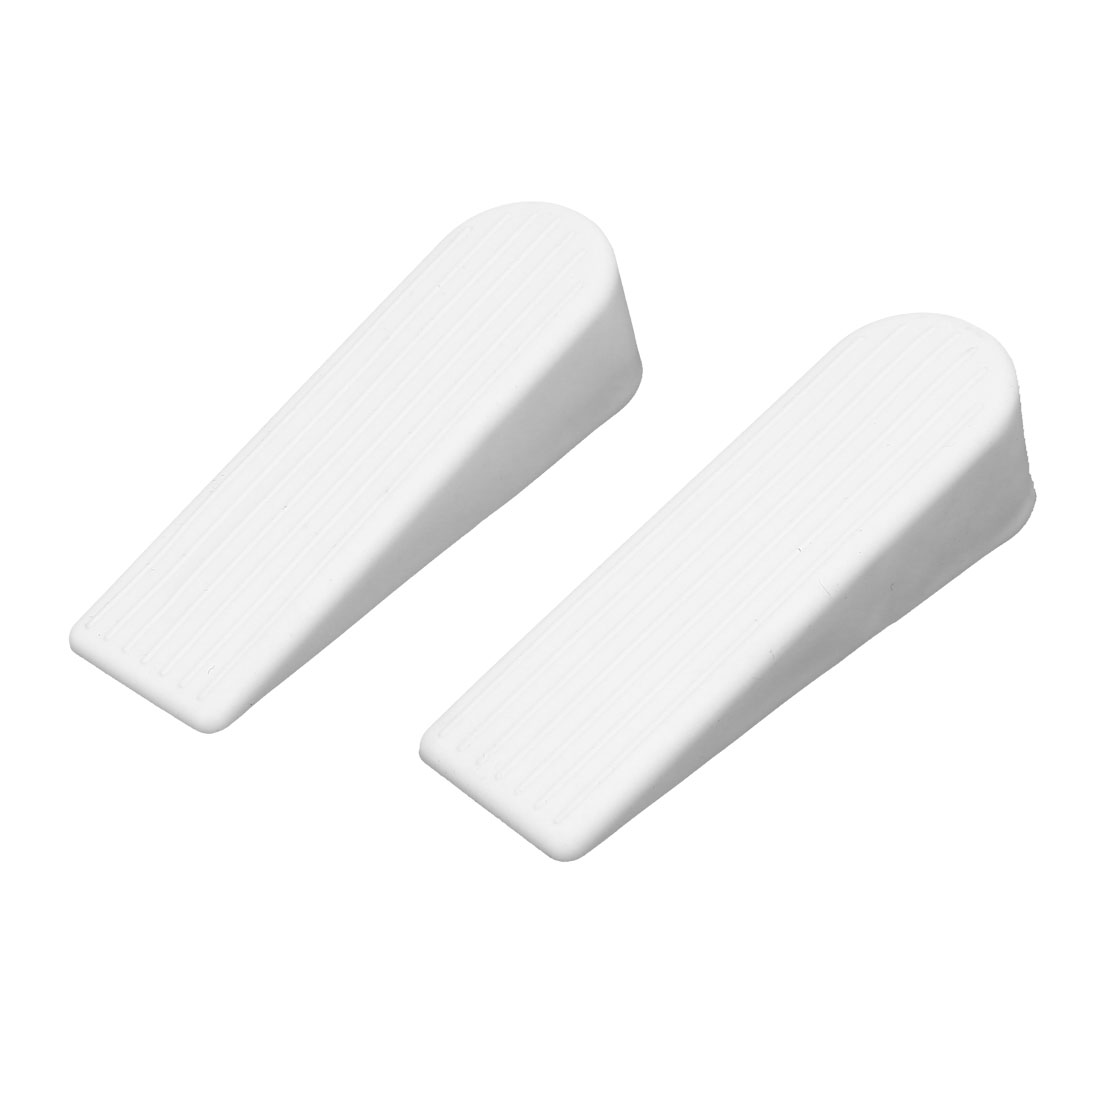 Home Office Rubber Safety Wedge Jam Door Stopper Doorstop White 100mm Length 2pcs